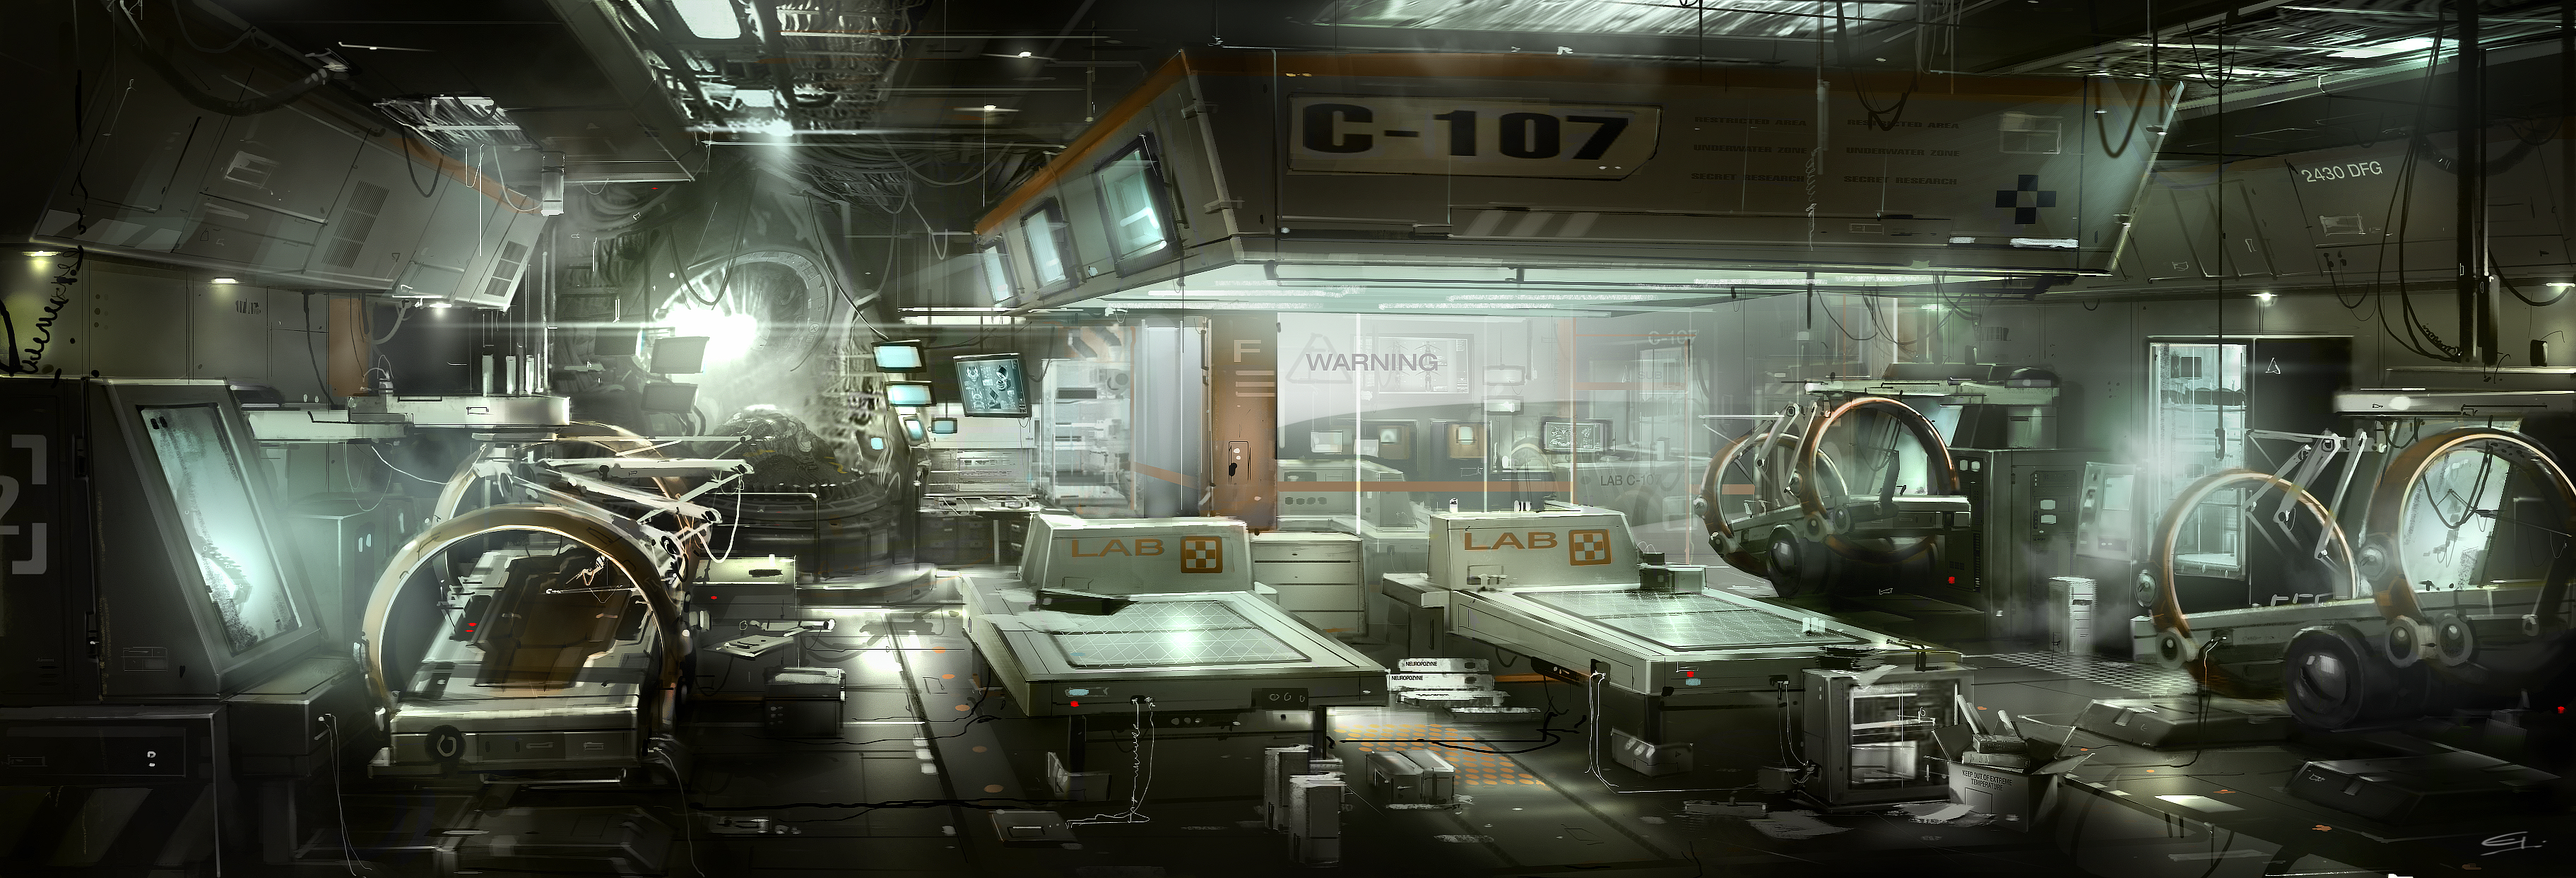 sci fi laboratory pictures to pin on pinterest pinsdaddy sci fi home of the nutty sci fi homebrew